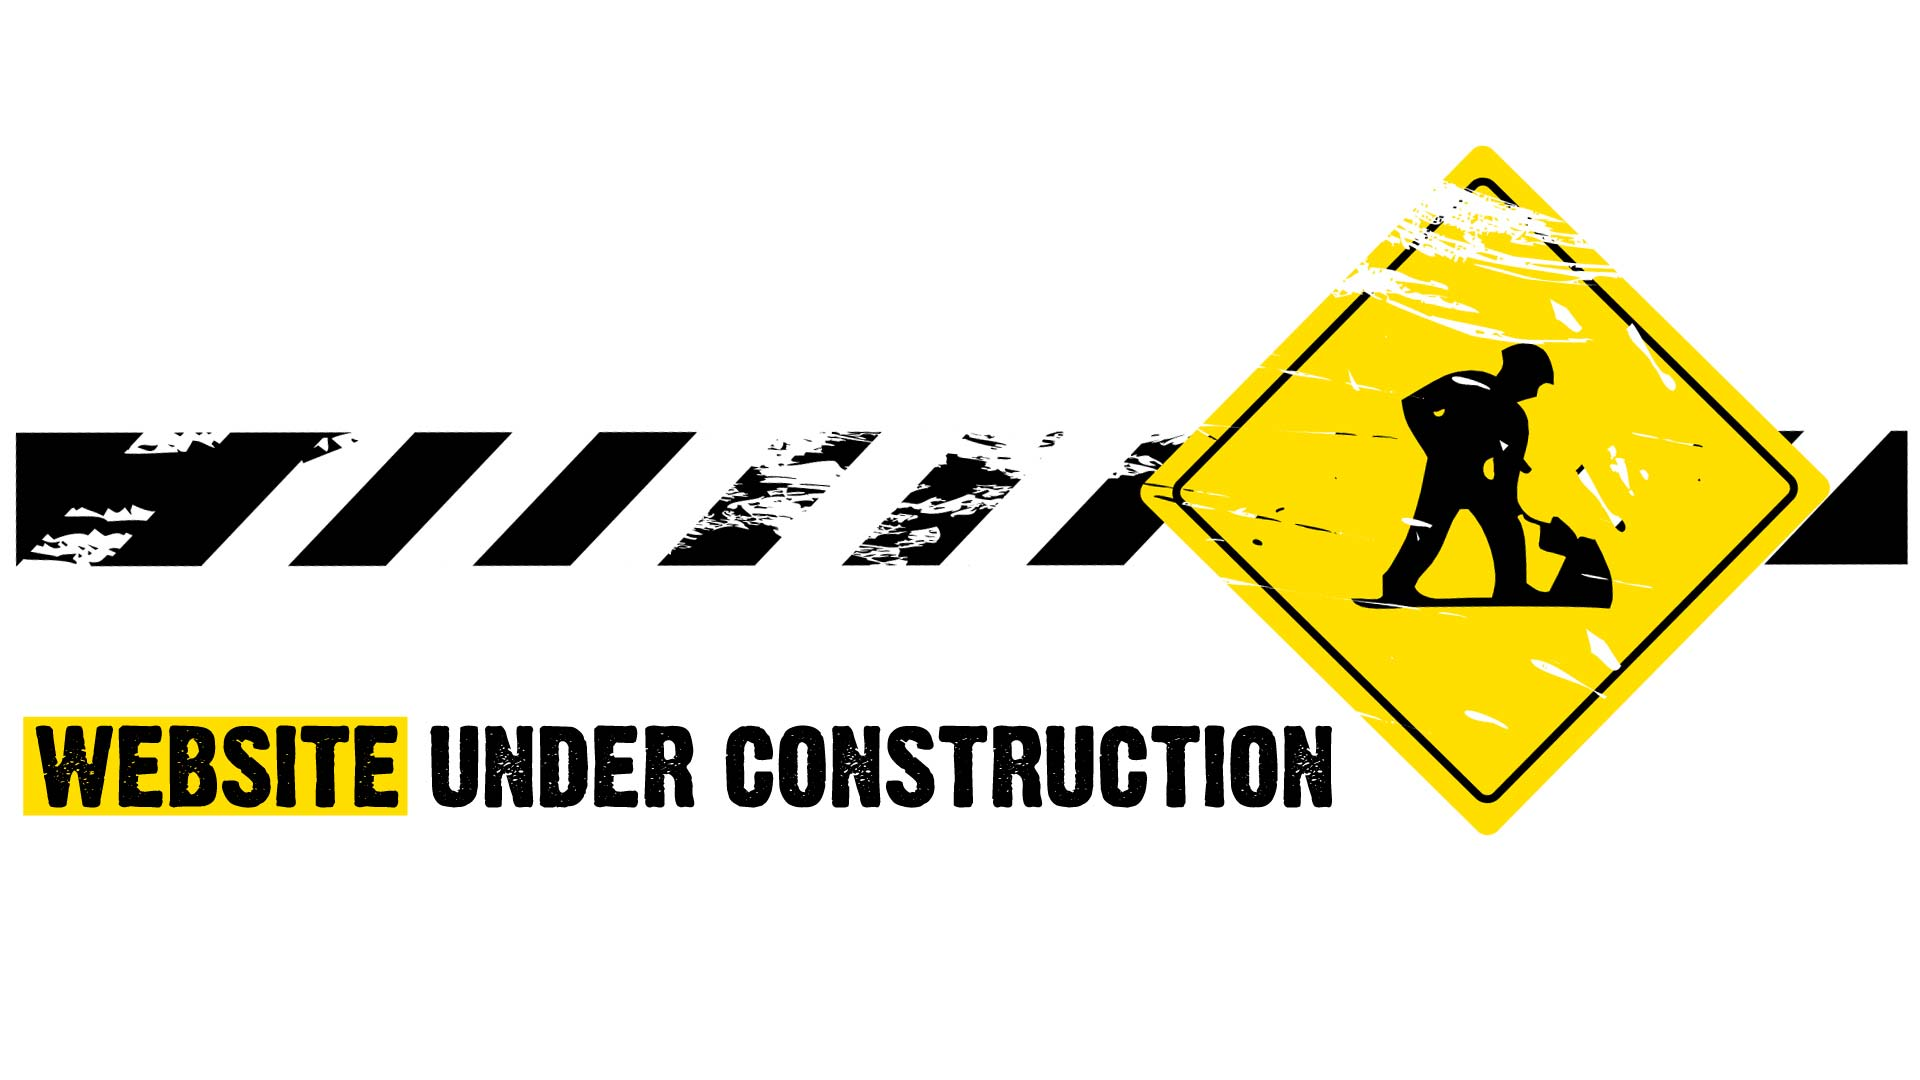 Under Construction Png Hd Free - Kpau0027S New Website, Transparent background PNG HD thumbnail